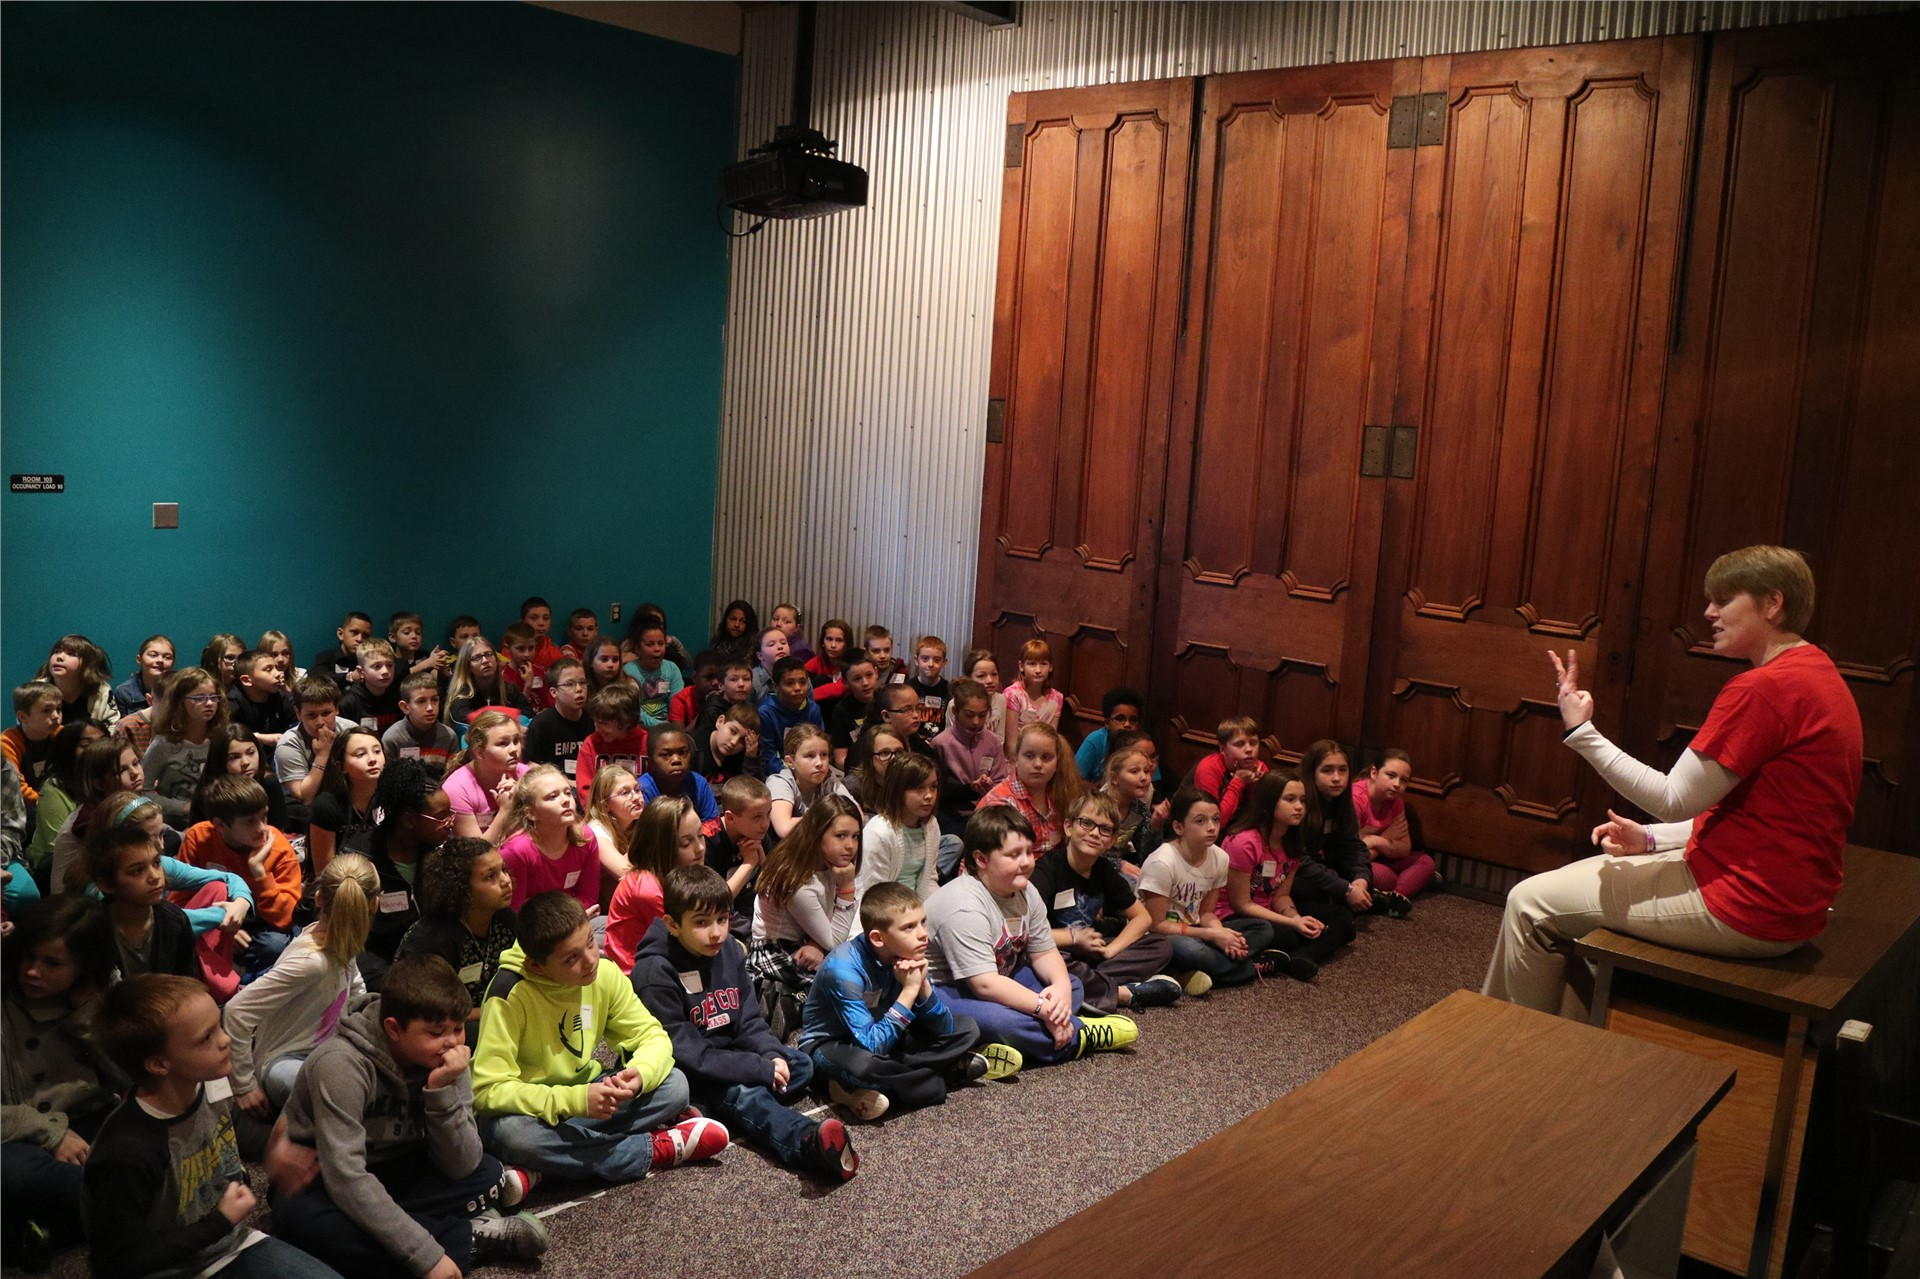 Over the course of three days all 500+ fourth graders have the chance to explore this museum